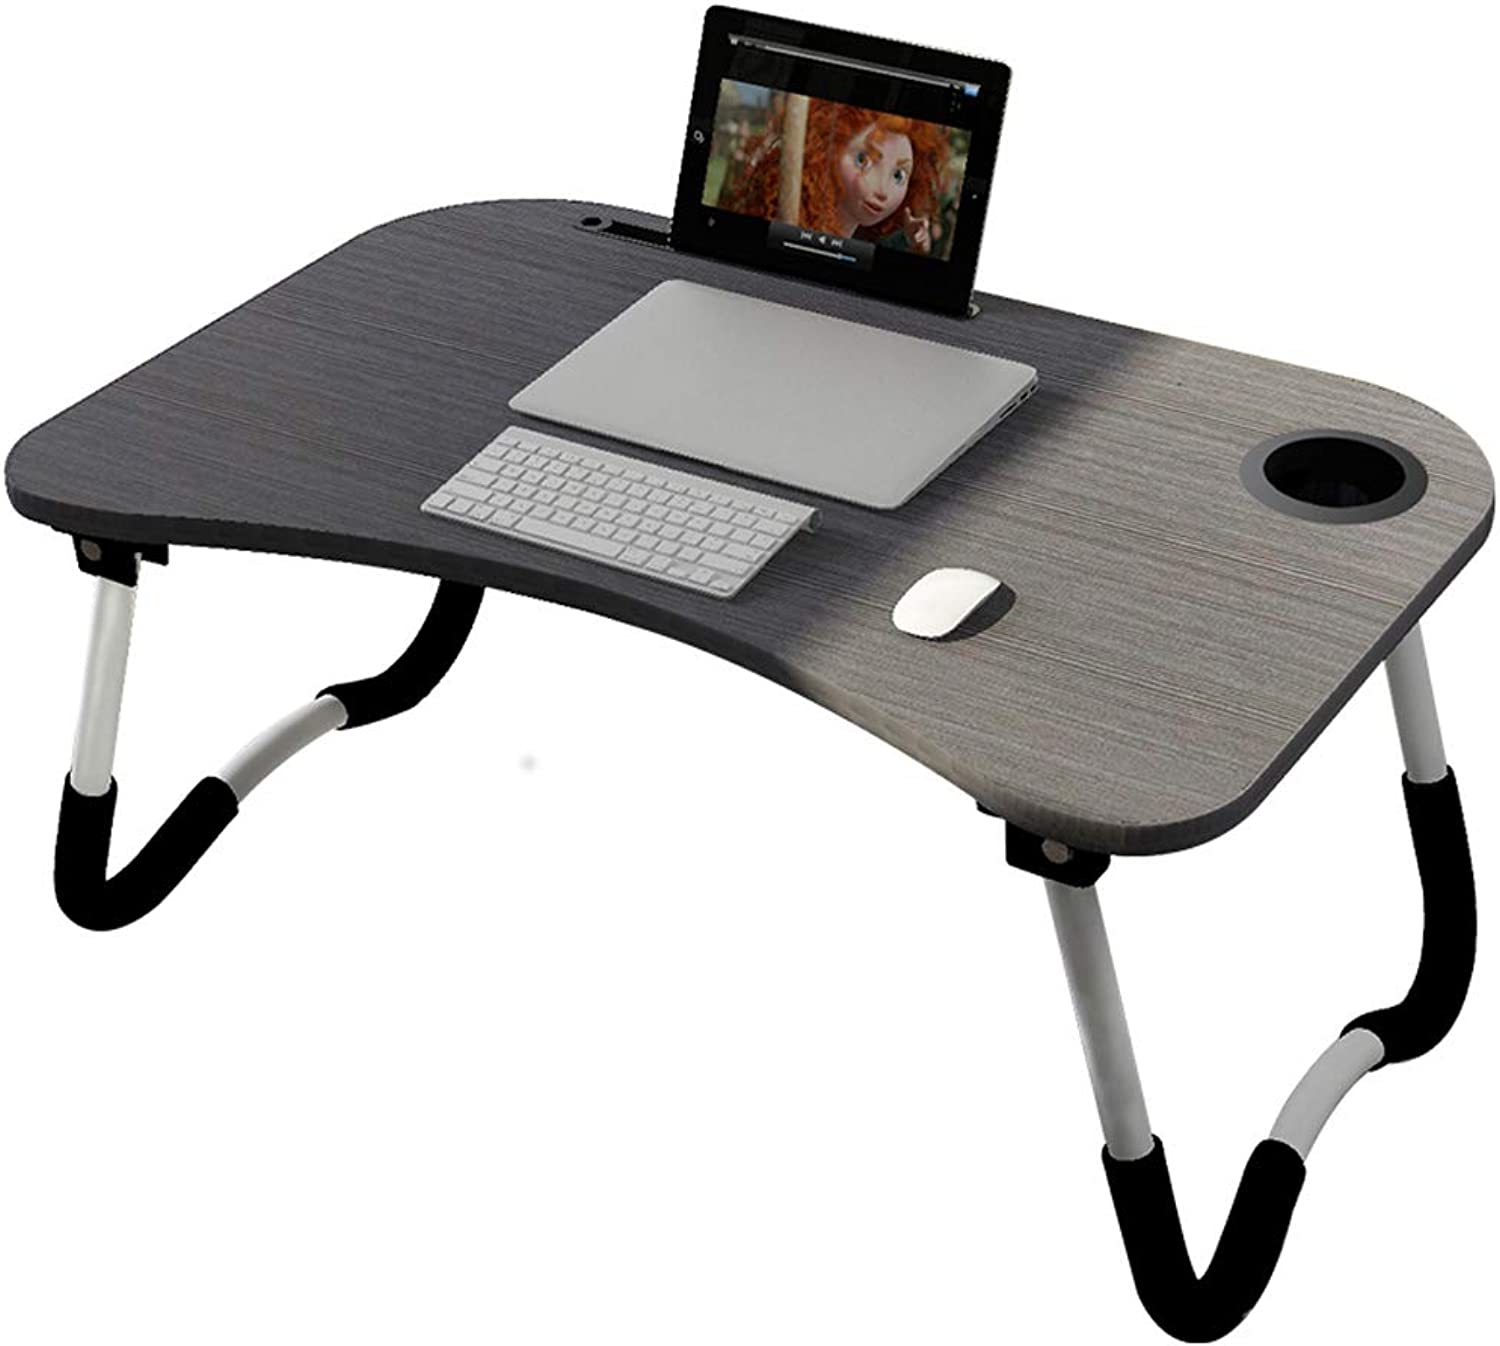 Laptop Desk Bed Foldable Lazy Small Table Bedroom Student Dormitory Artifact Desk